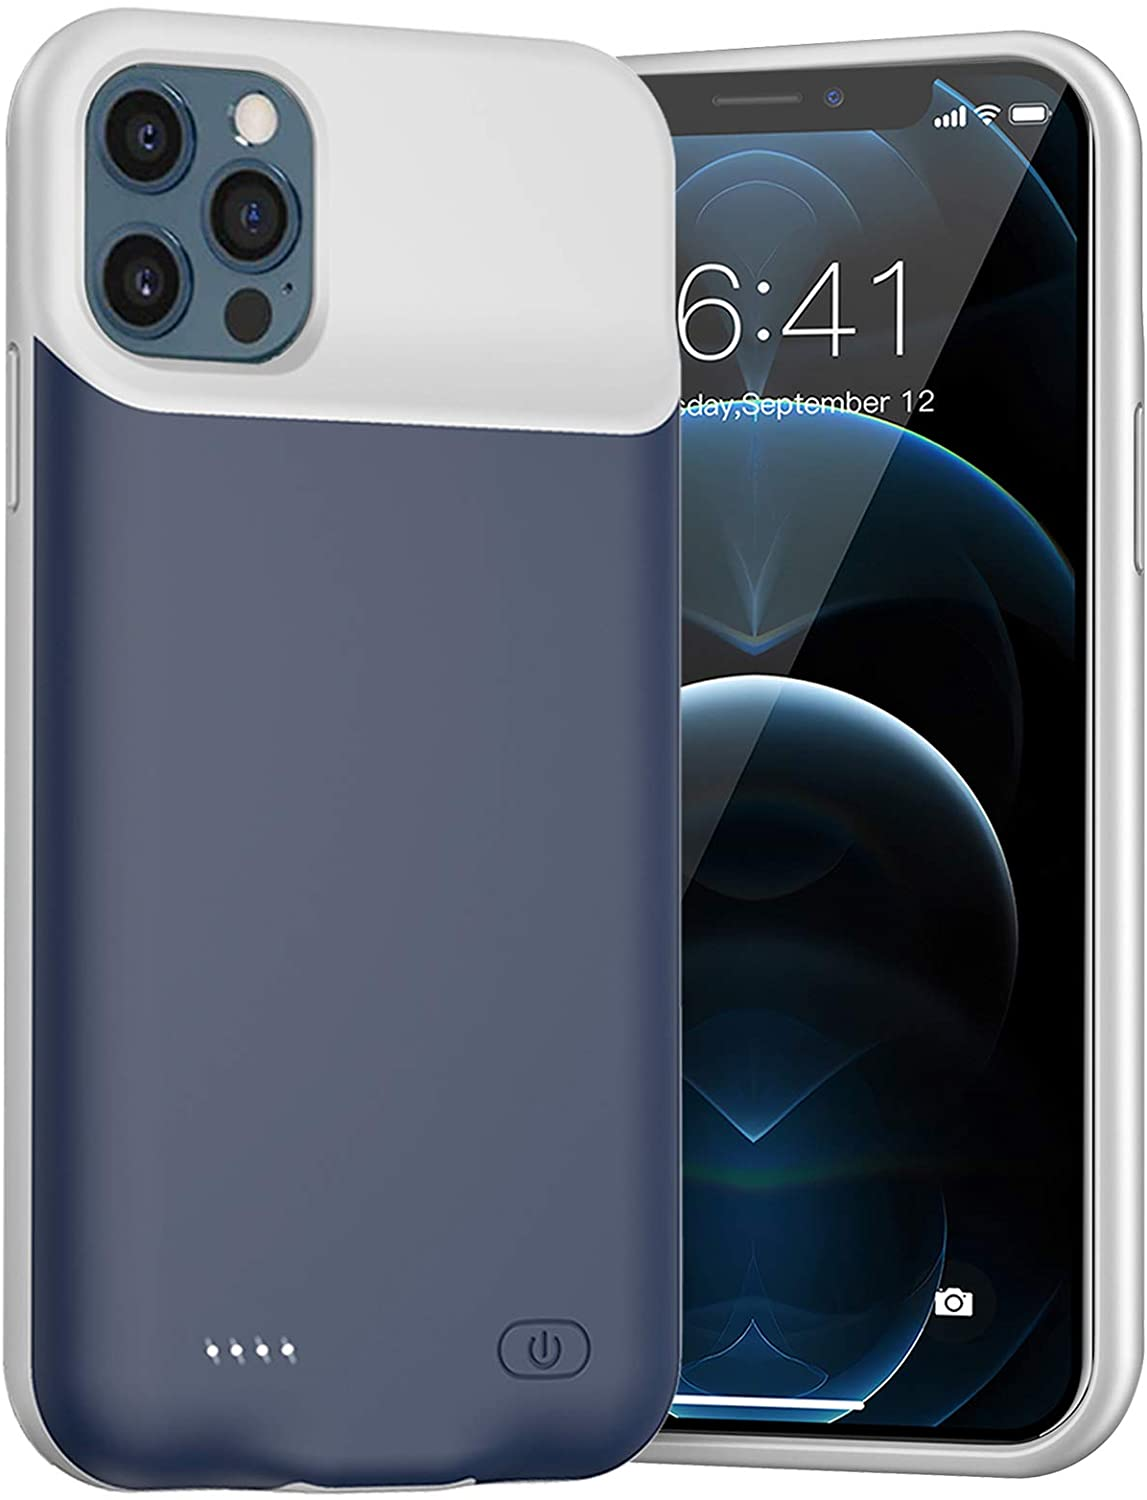 Euhan Battery Case For Iphone 12 Pro Max